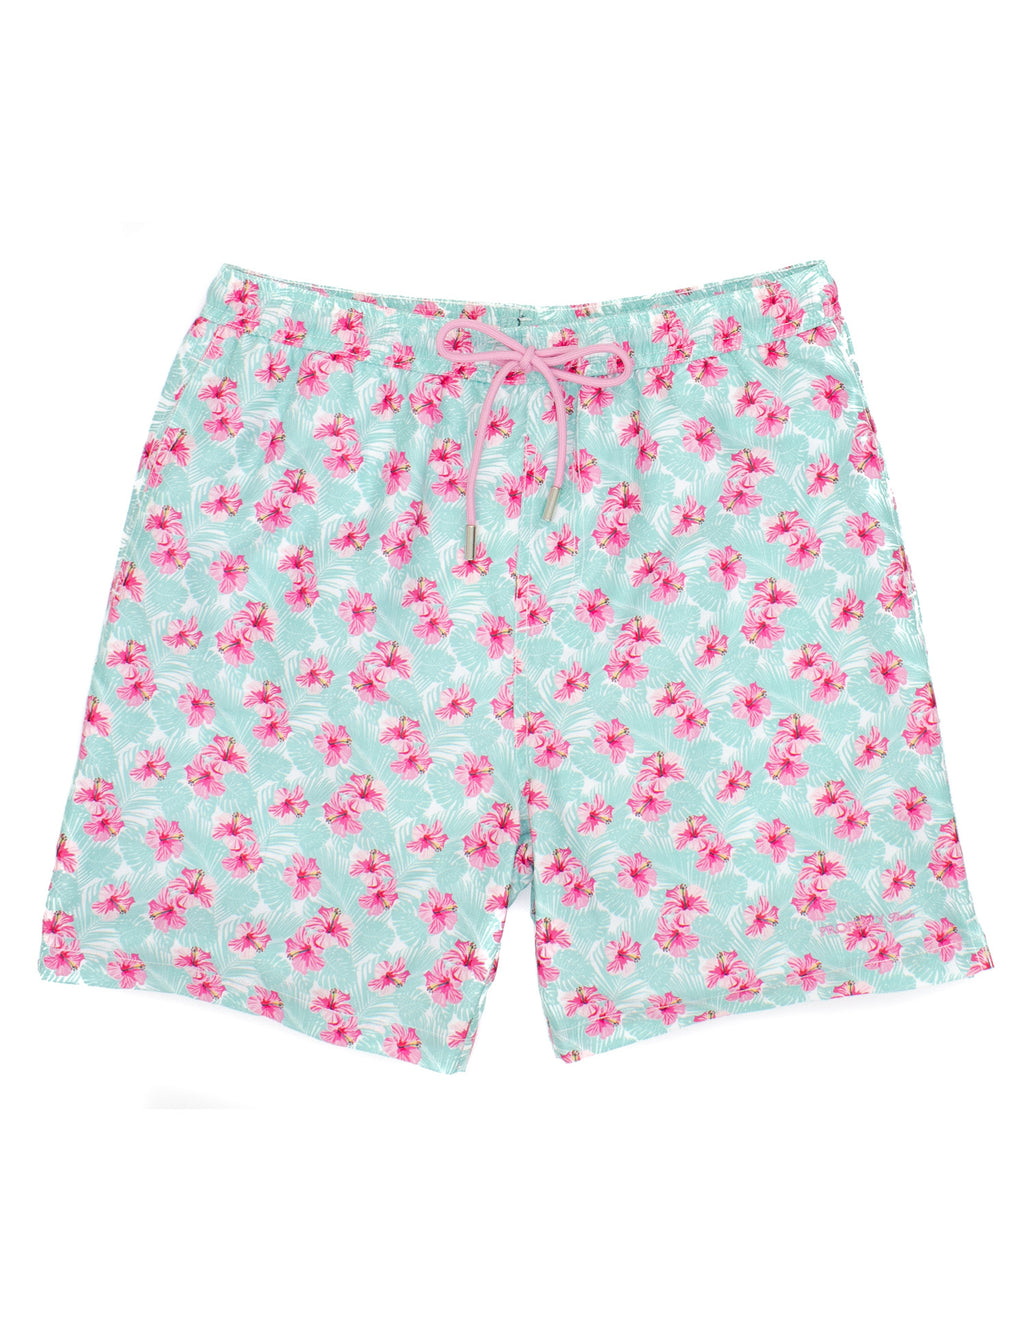 Properly Tied Boys Swim Trunks - Tropic